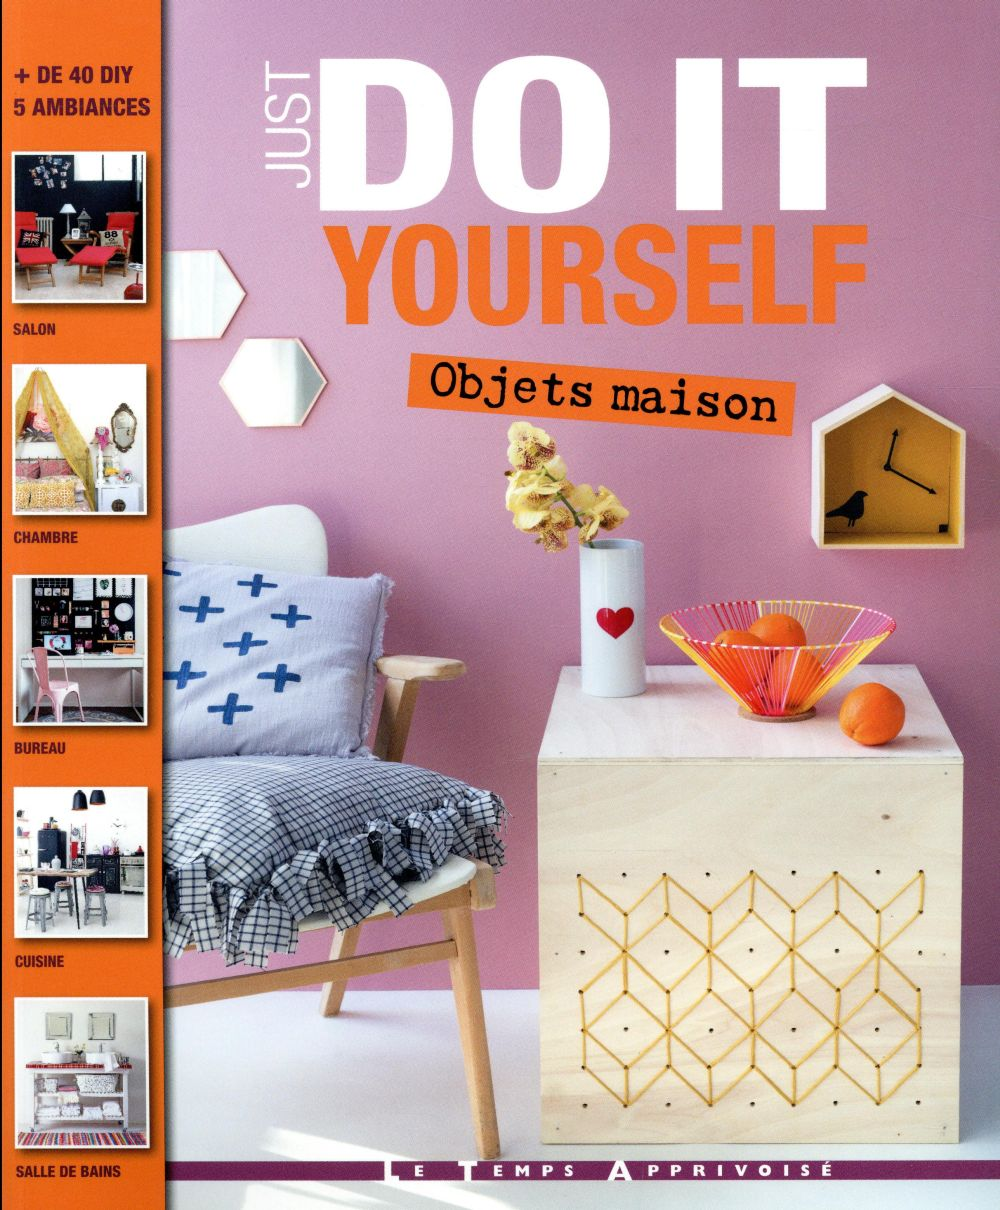 Just do it yourself ; objets maison